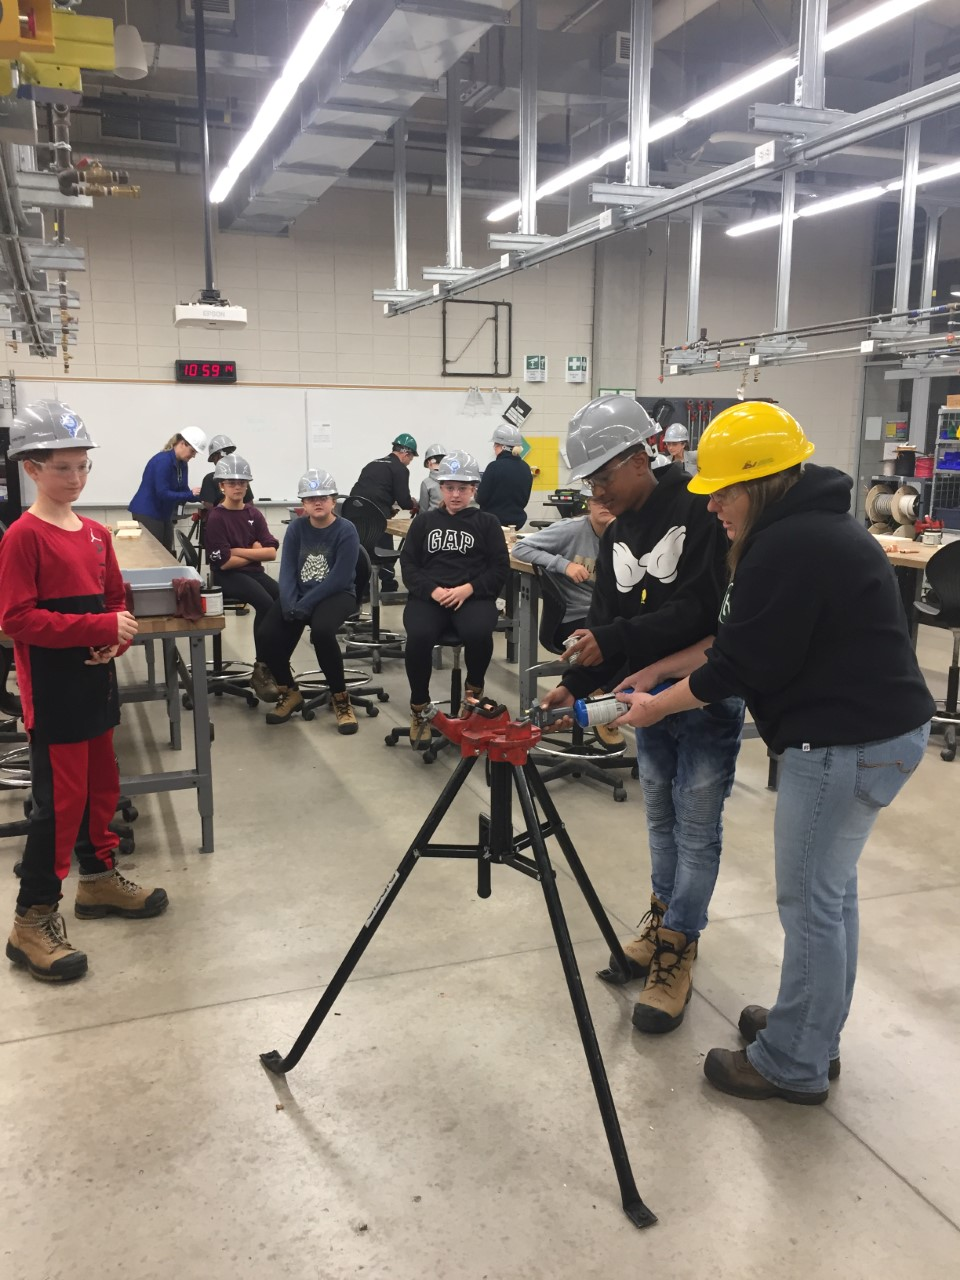 Students measuring in a trades classroom